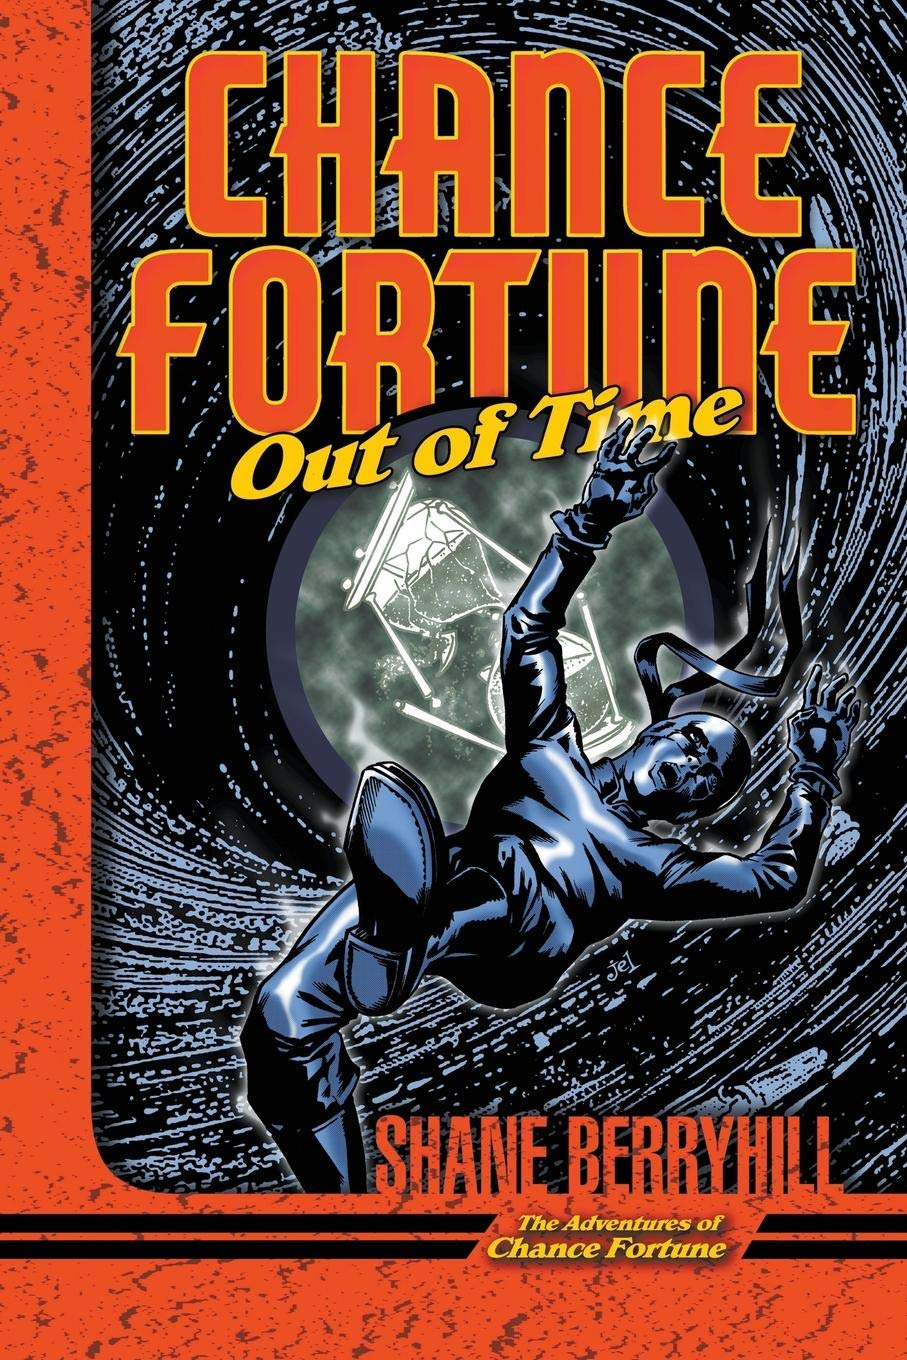 Read Online Chance Fortune Out of Time (The Adventures of Chance Fortune) pdf epub